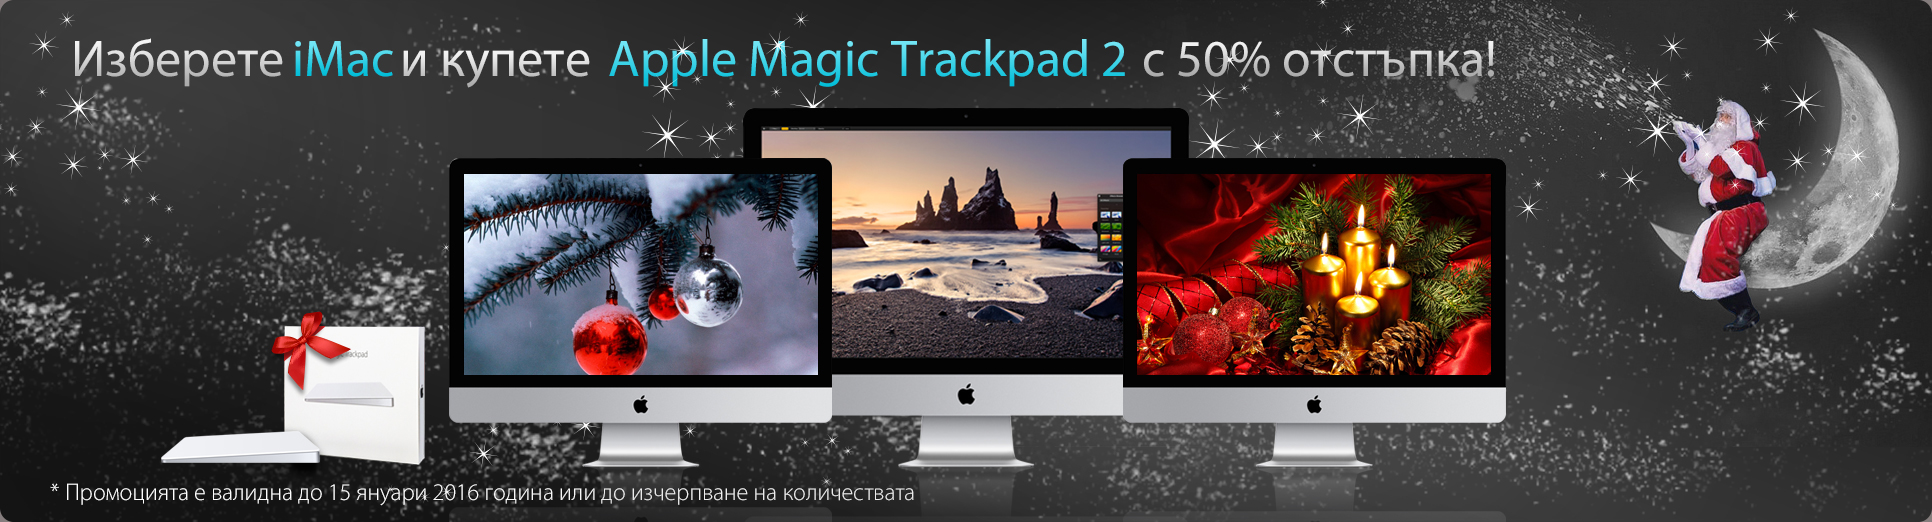 20151208-teaser-apple-imac-retina-display-magic-trackpad-promo